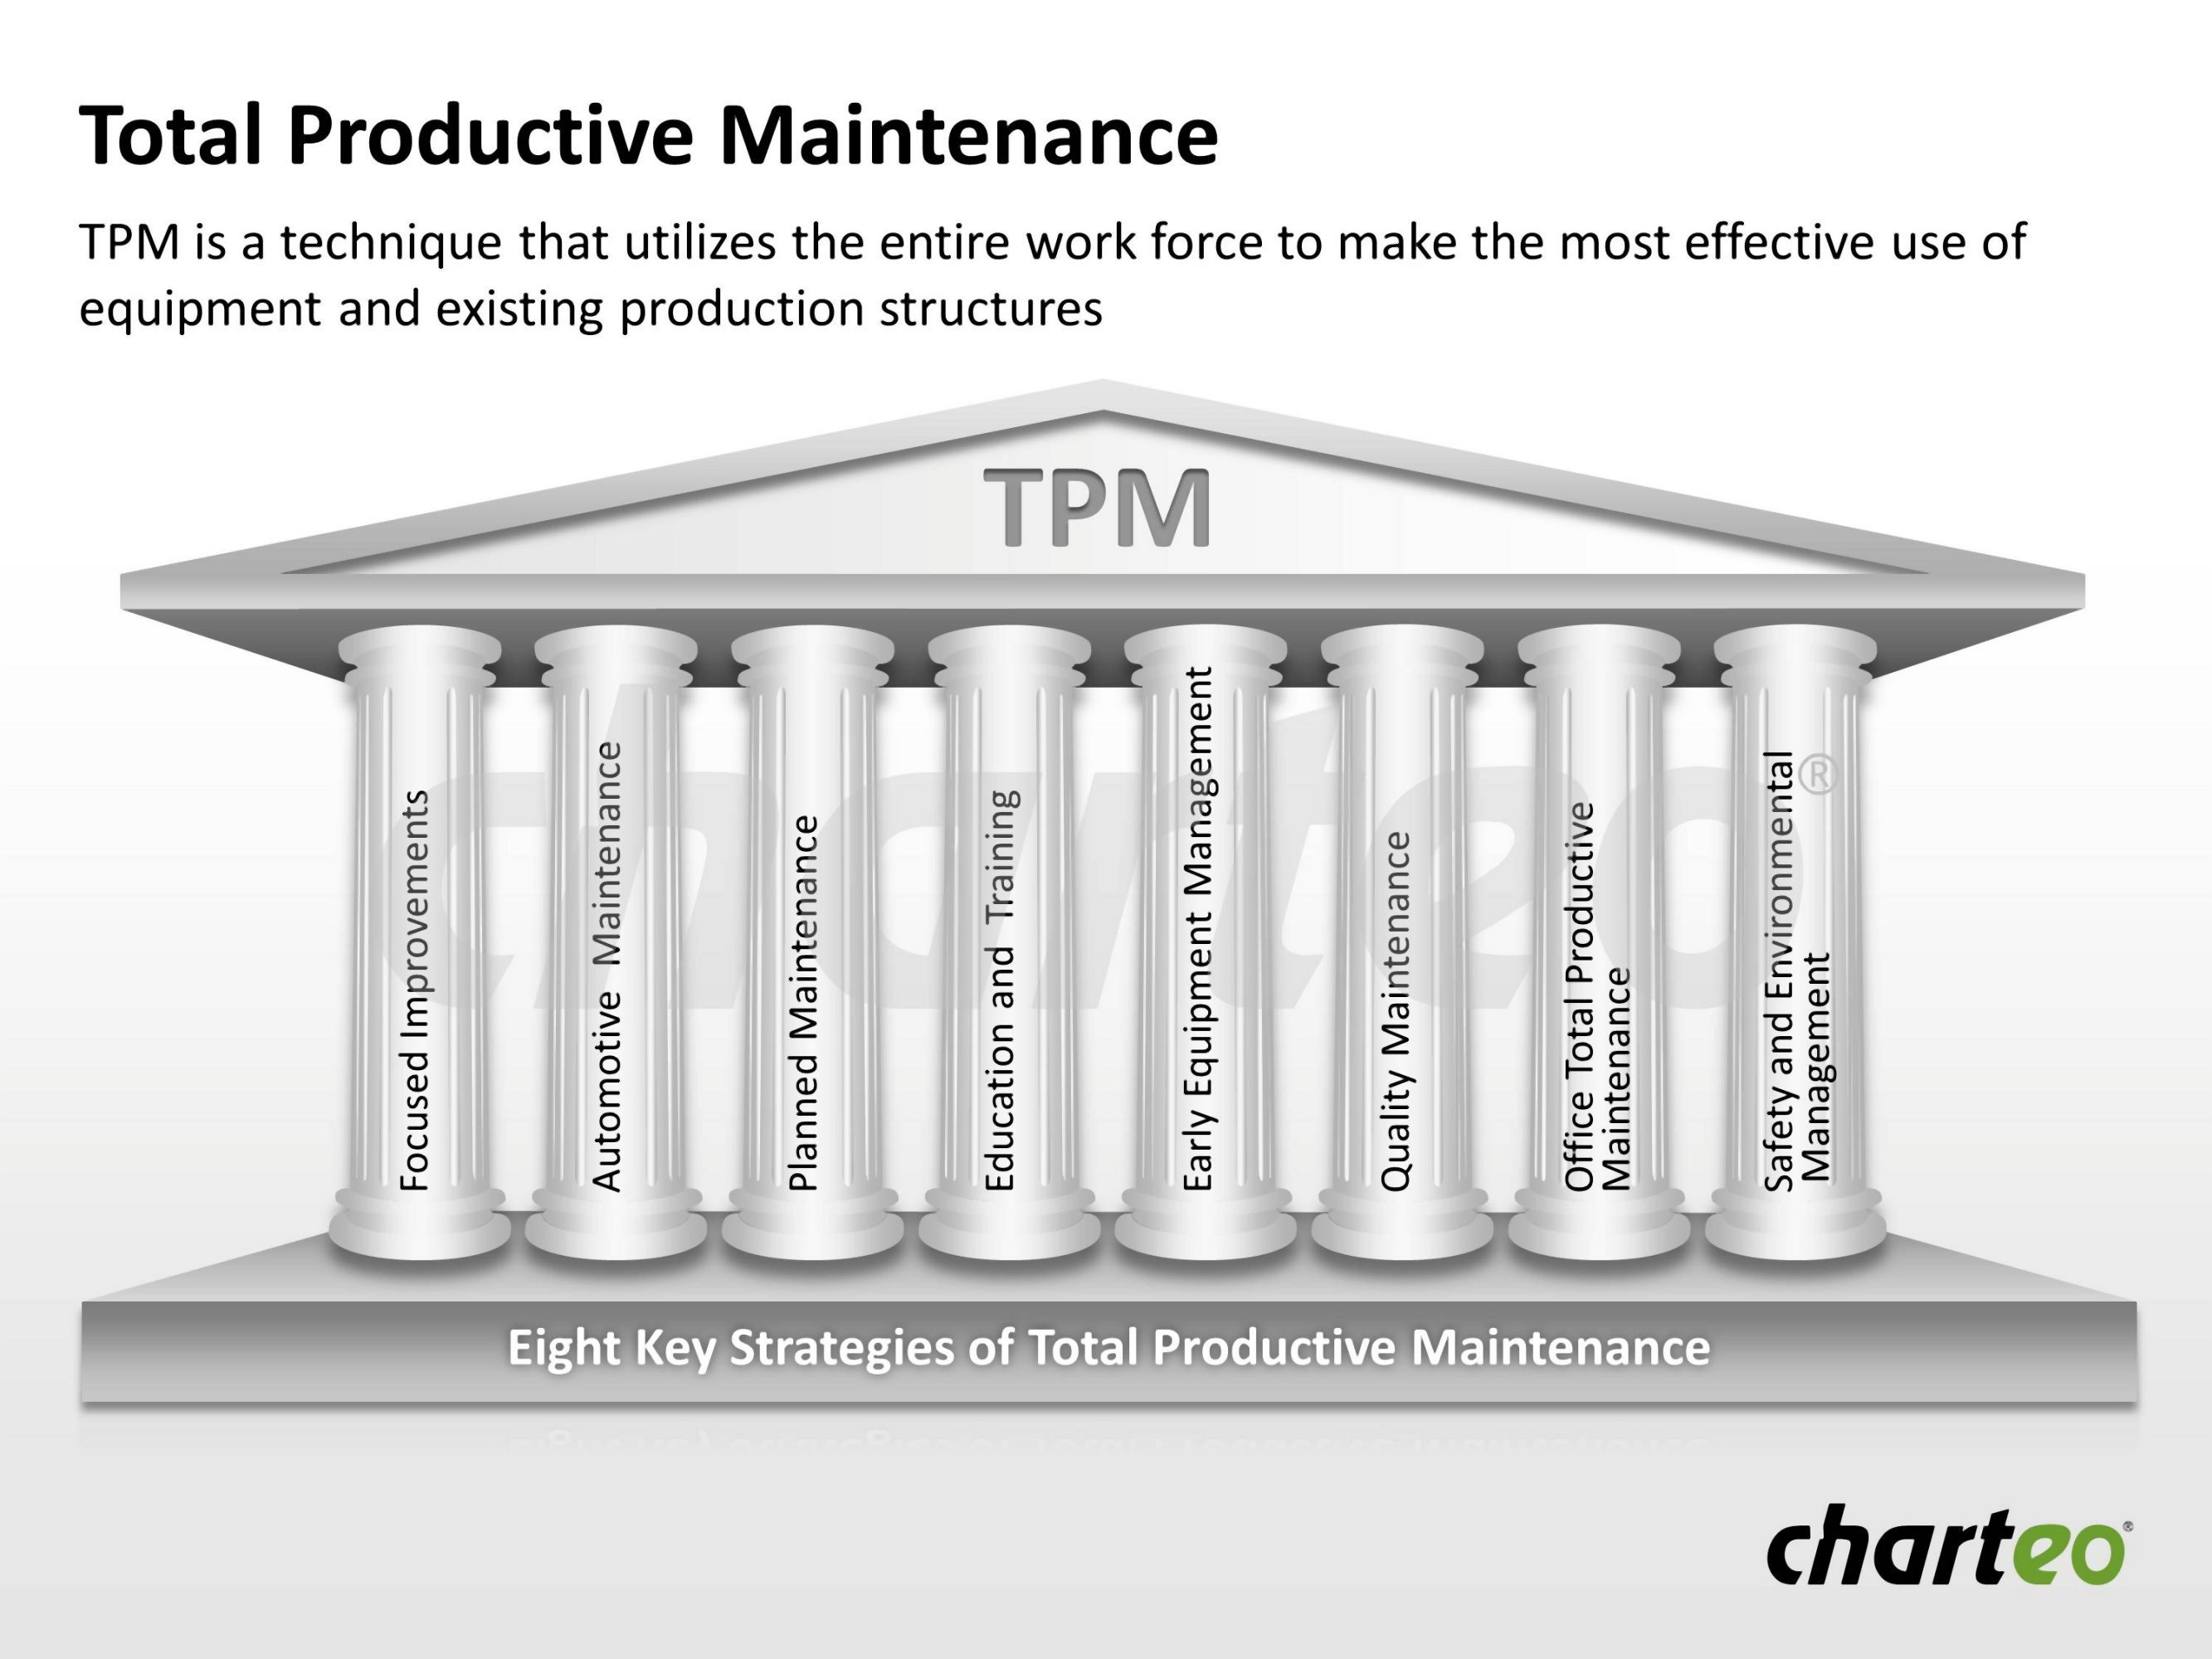 Use Our Total Productive Maintenance Template To Display